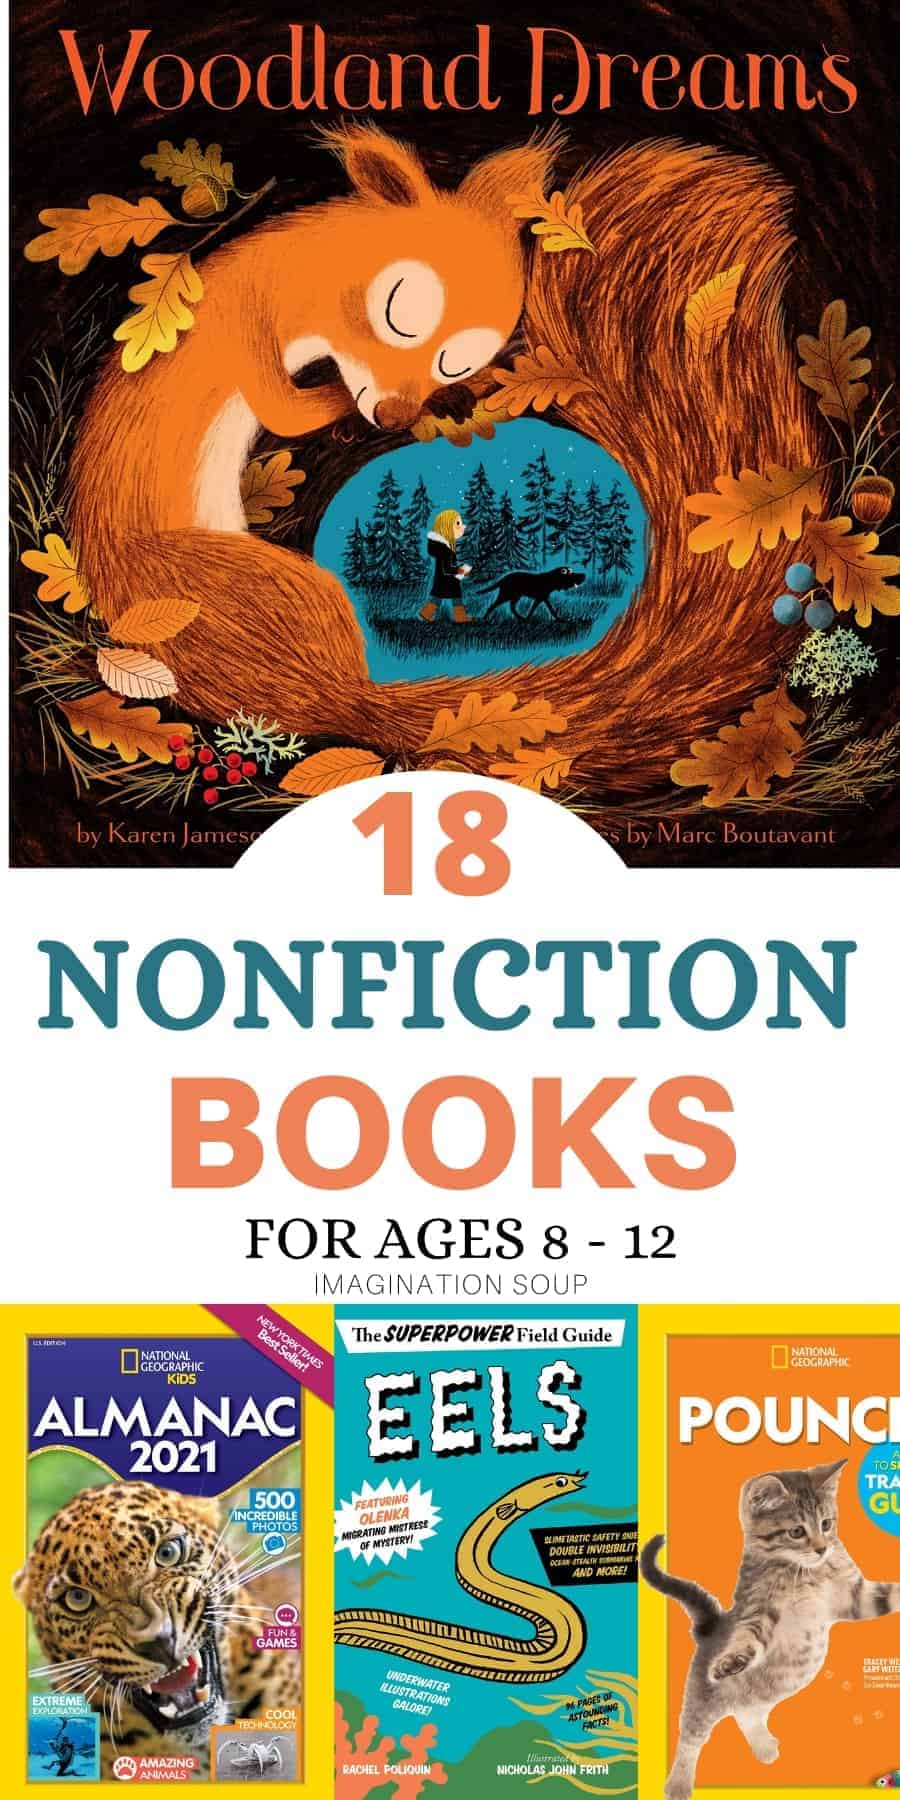 New nonfiction books for ages 8 to 12